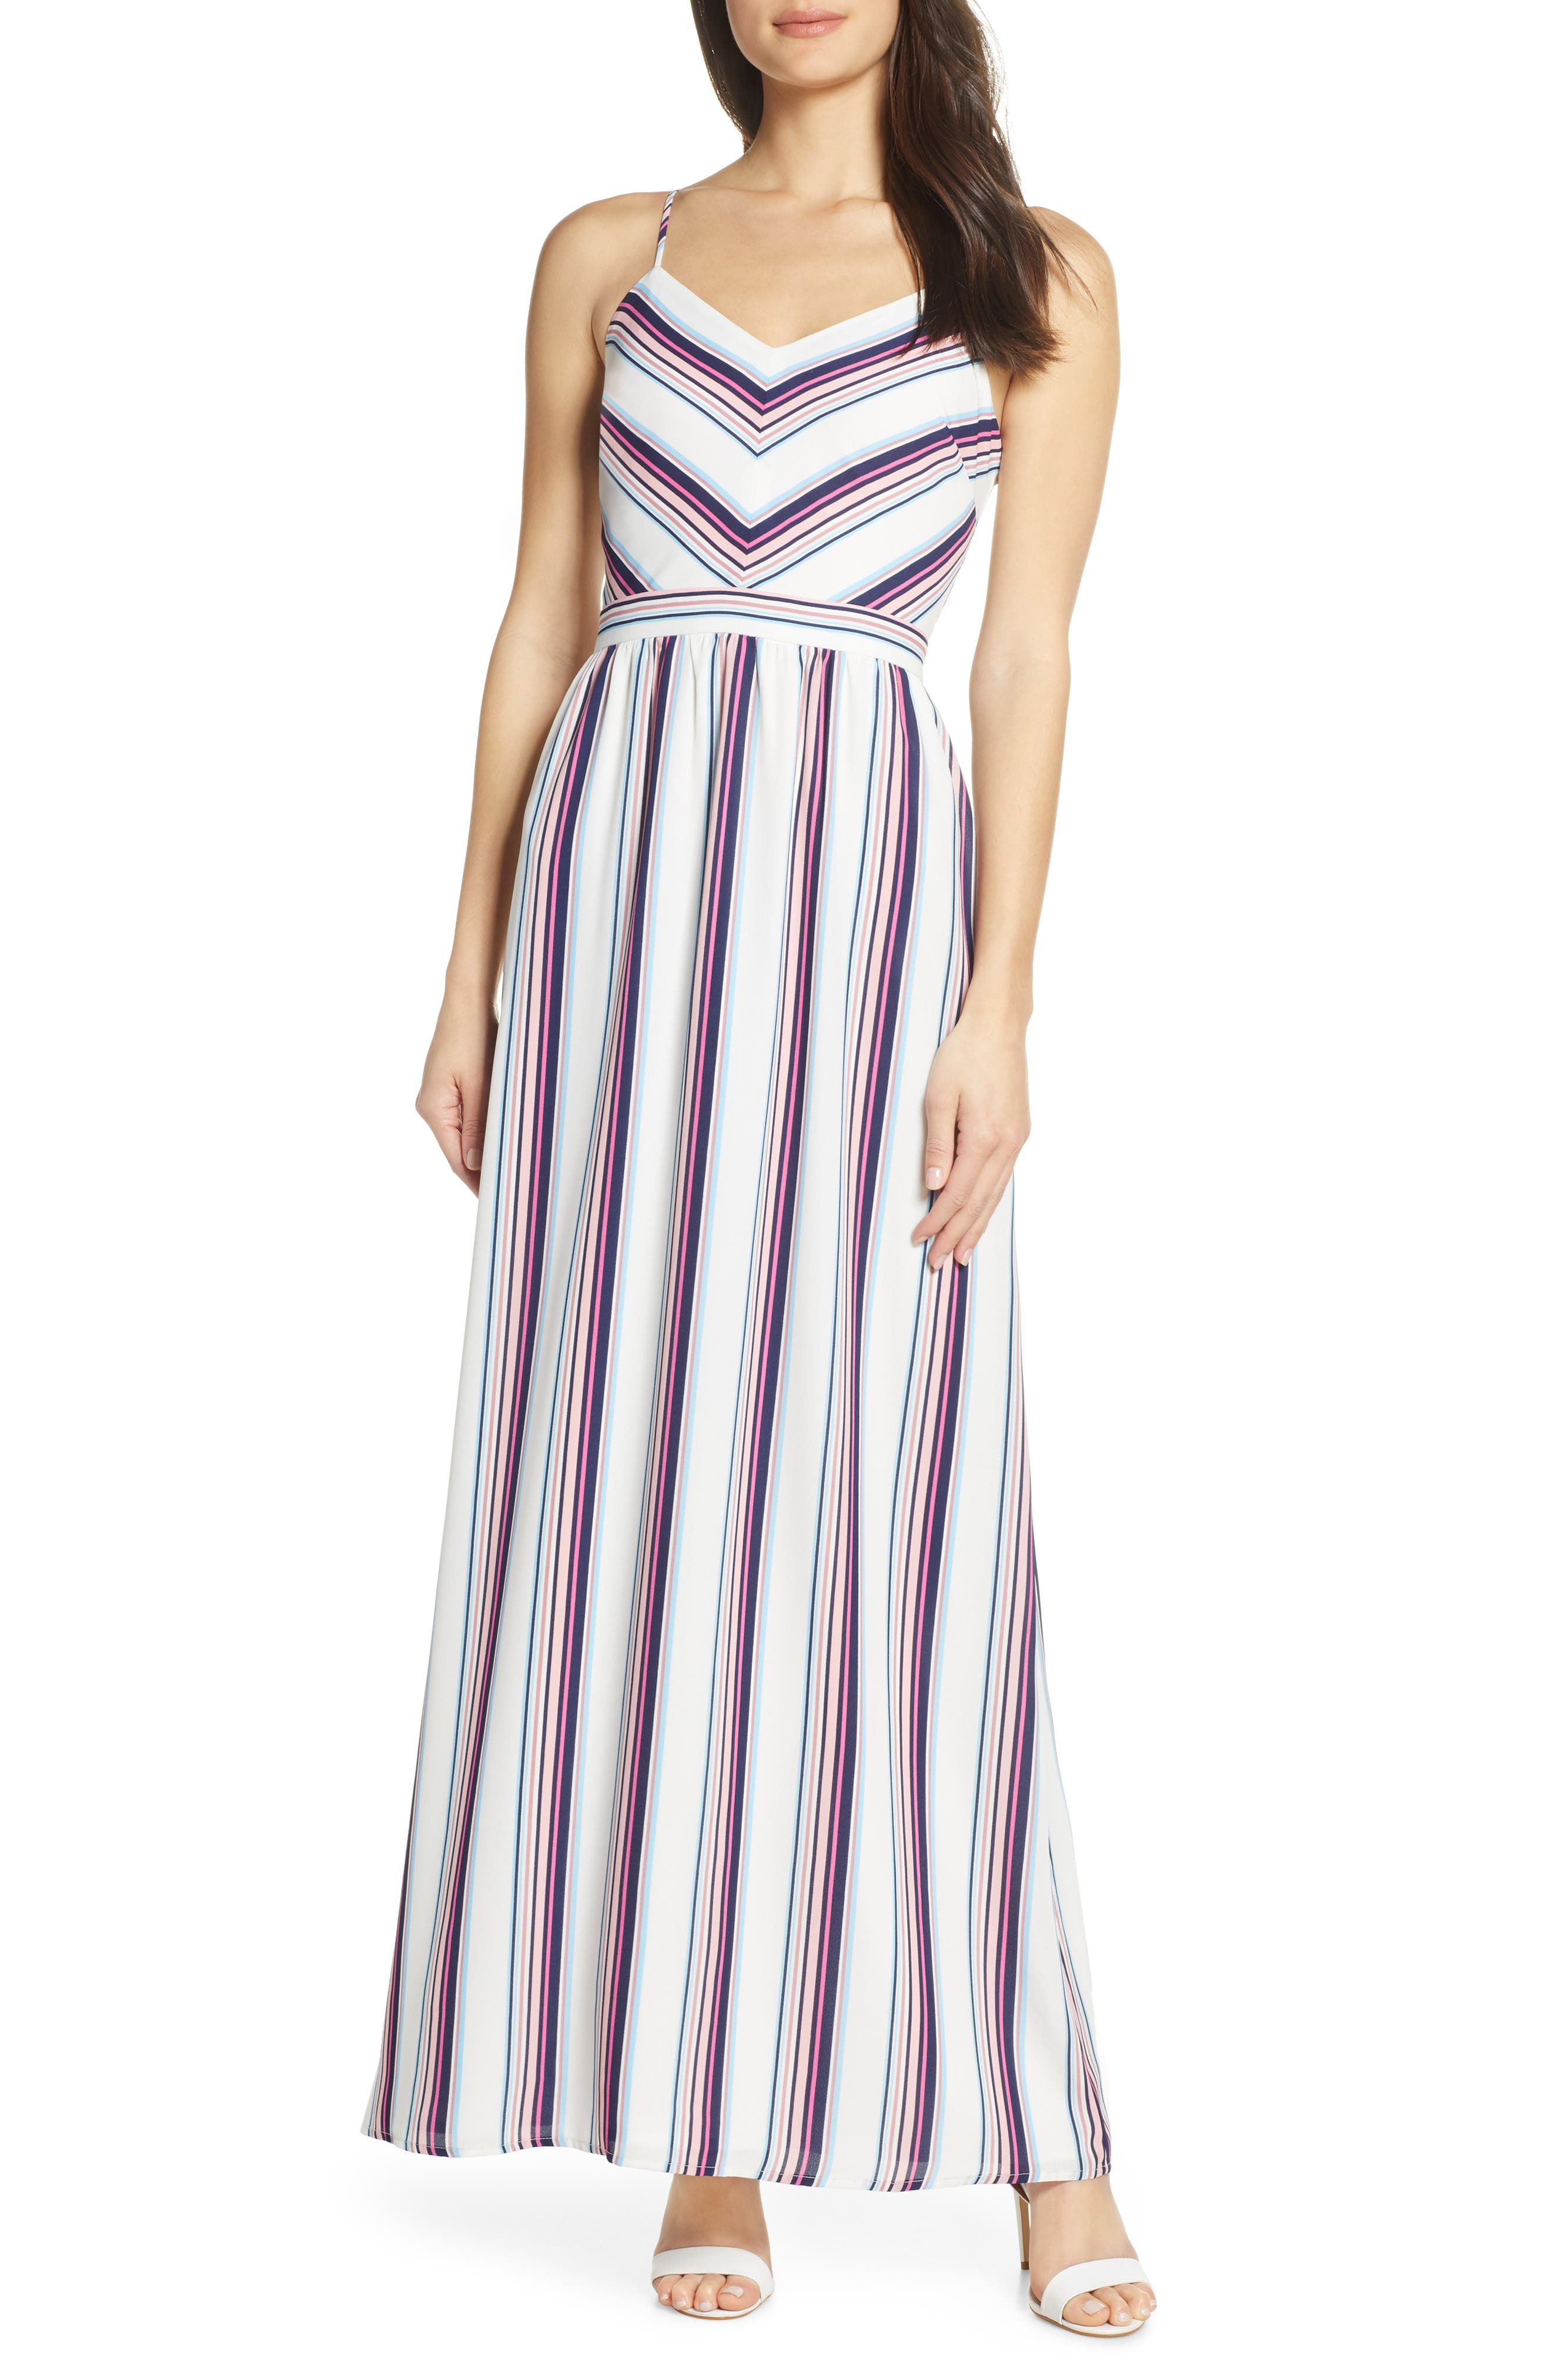 CHARLES HENRY, Cami Maxi Dress, Main thumbnail 1, color, WHITE-NAVY STRIPE